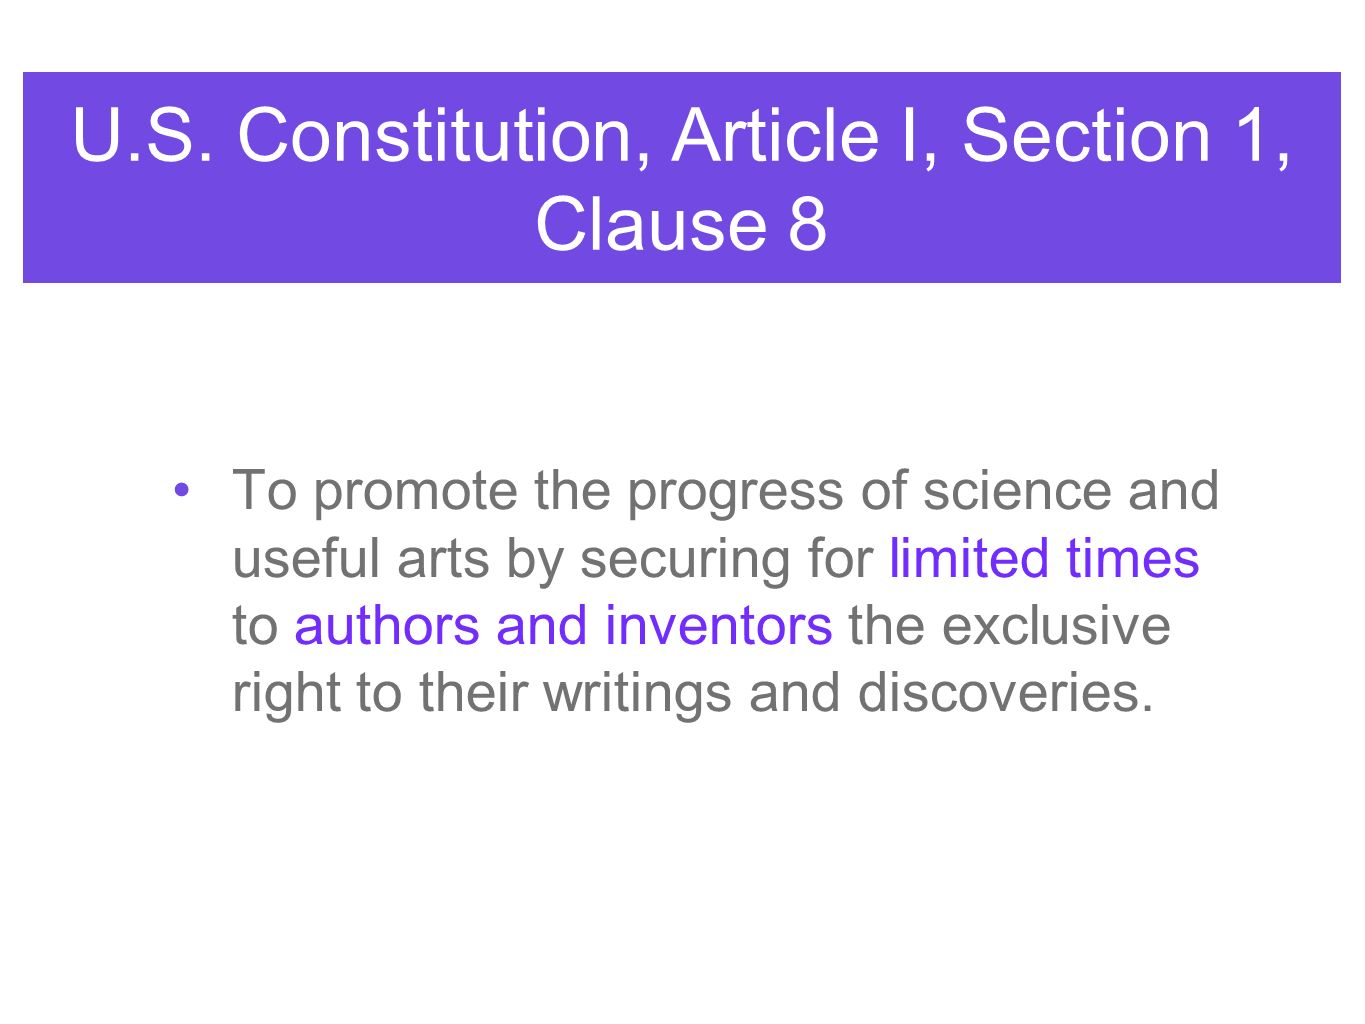 U.S. Constitution, Article I, Section 1, Clause 8